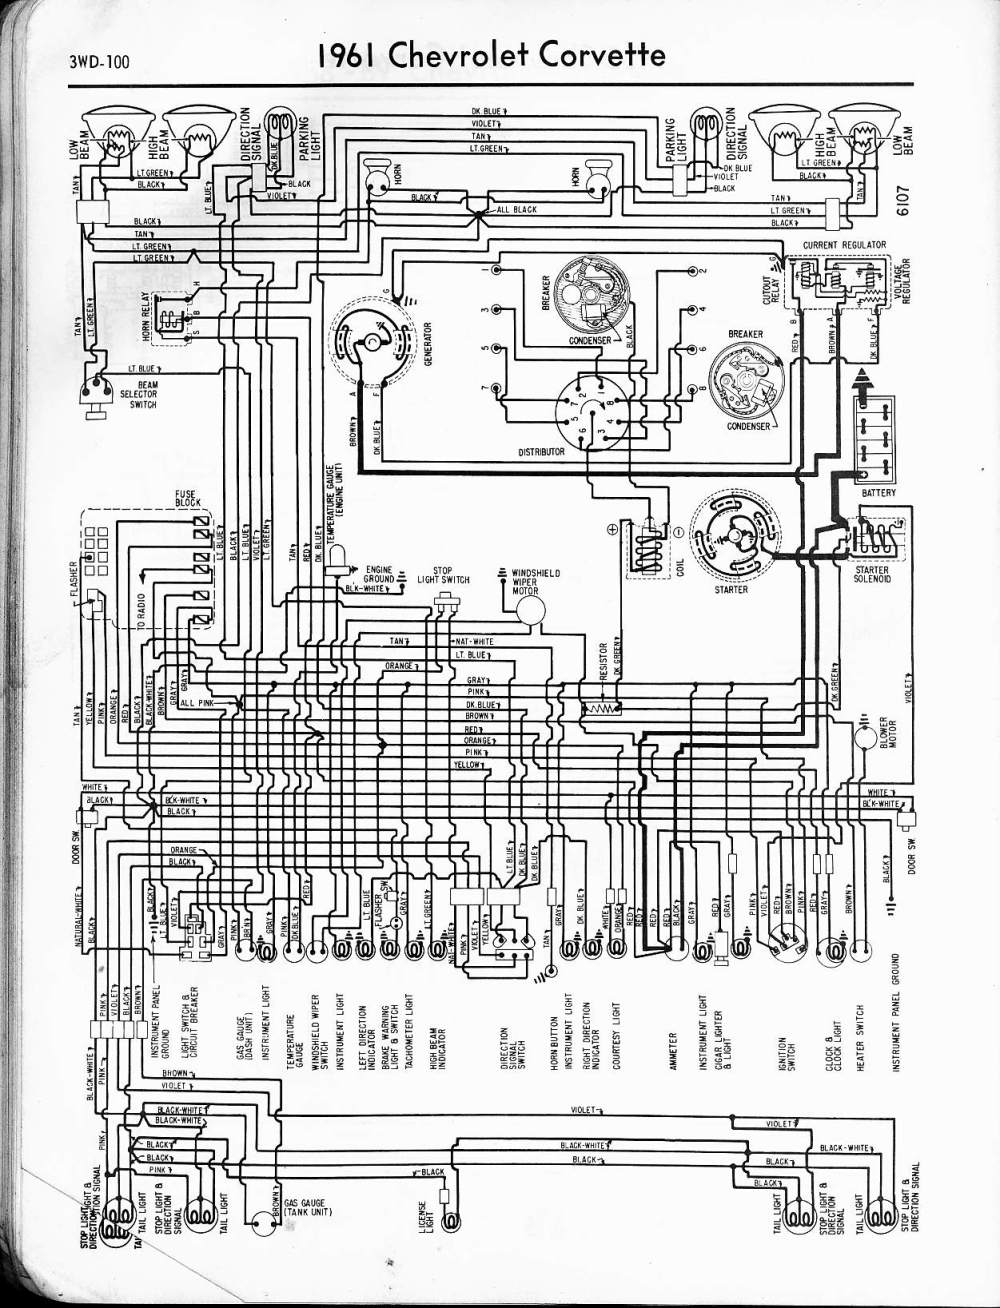 medium resolution of corvette wiring diagram wiring diagram todays57 65 chevy wiring diagrams th350 wiring diagram corvette wiring diagram